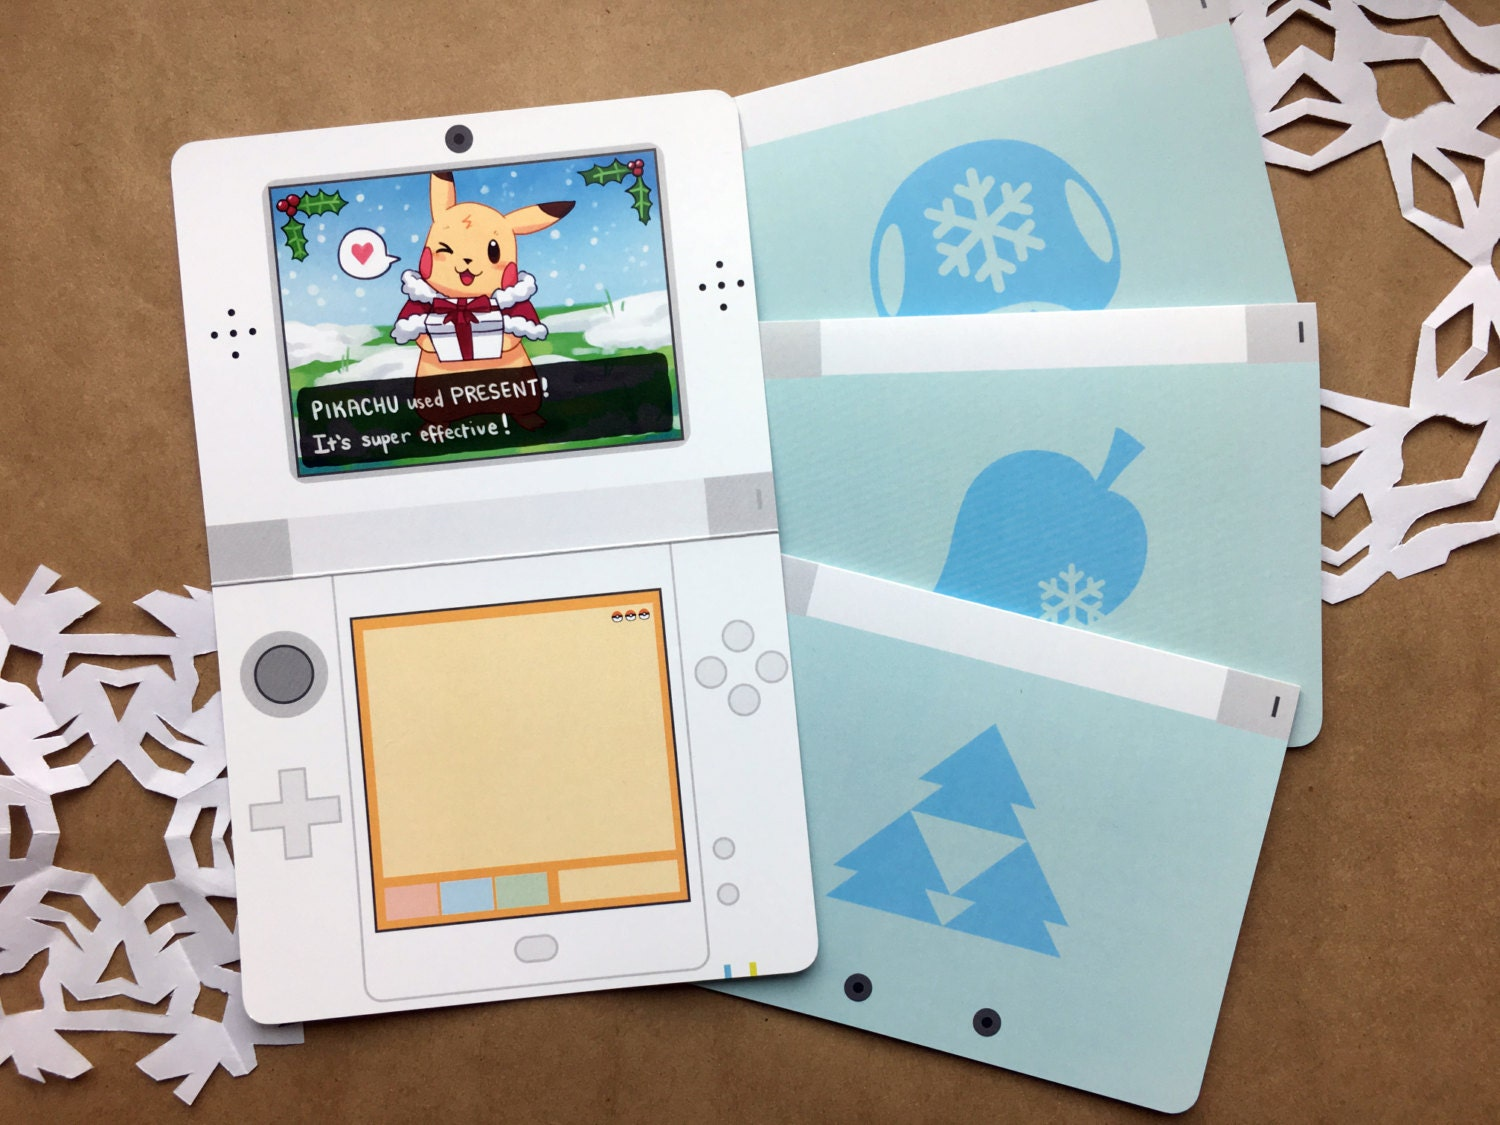 Nintendo Christmas.Nintendo Christmas Card Cute Christmas Card Geek Greeting Card Gamer Christmas Card Video Game Card Geek Card Gamer Greeting Card